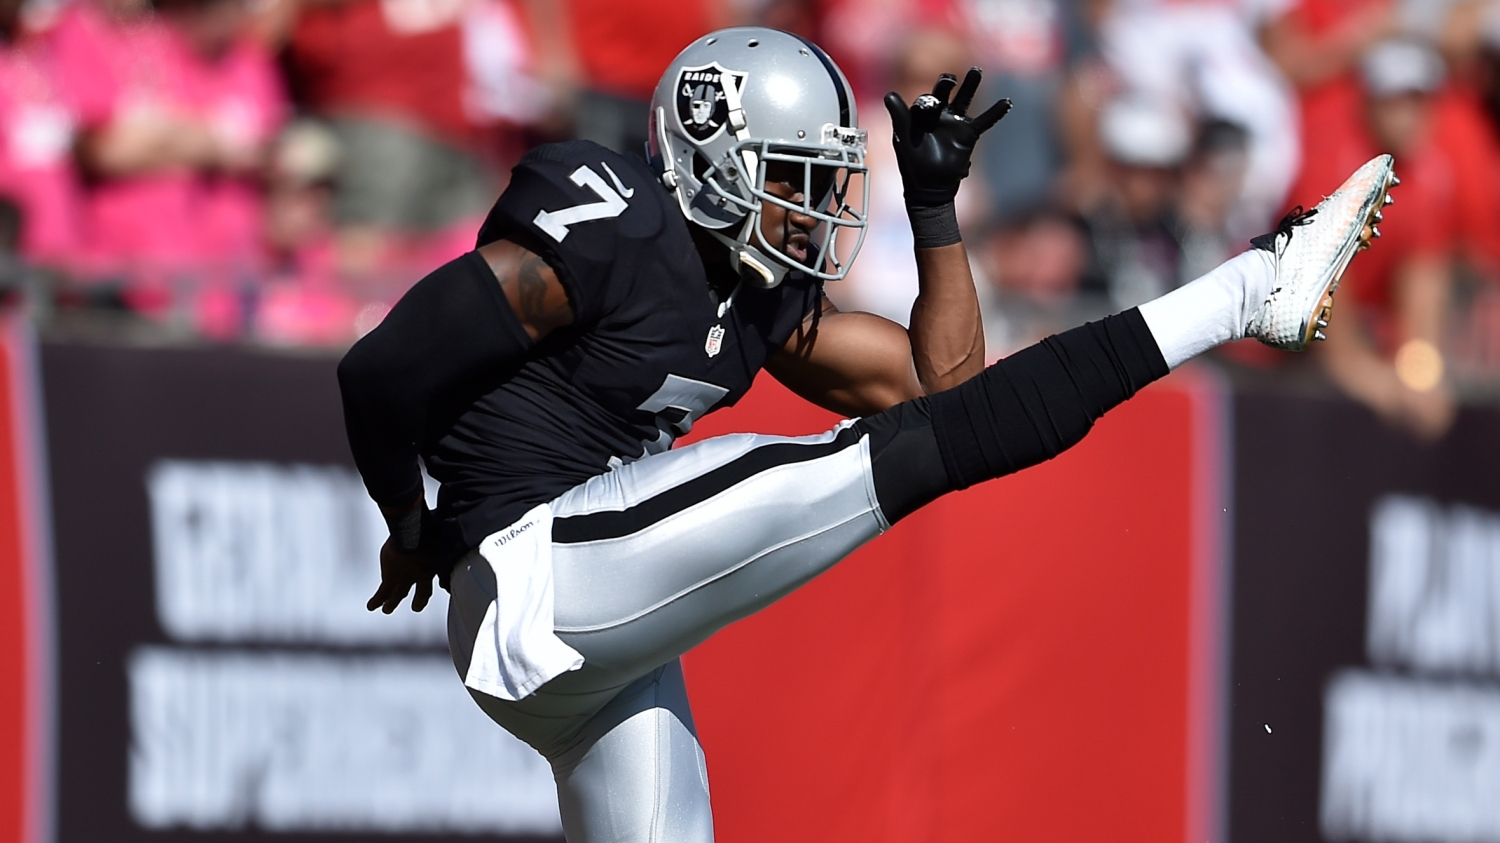 NFL: OCT 30 Raiders at Buccaneers